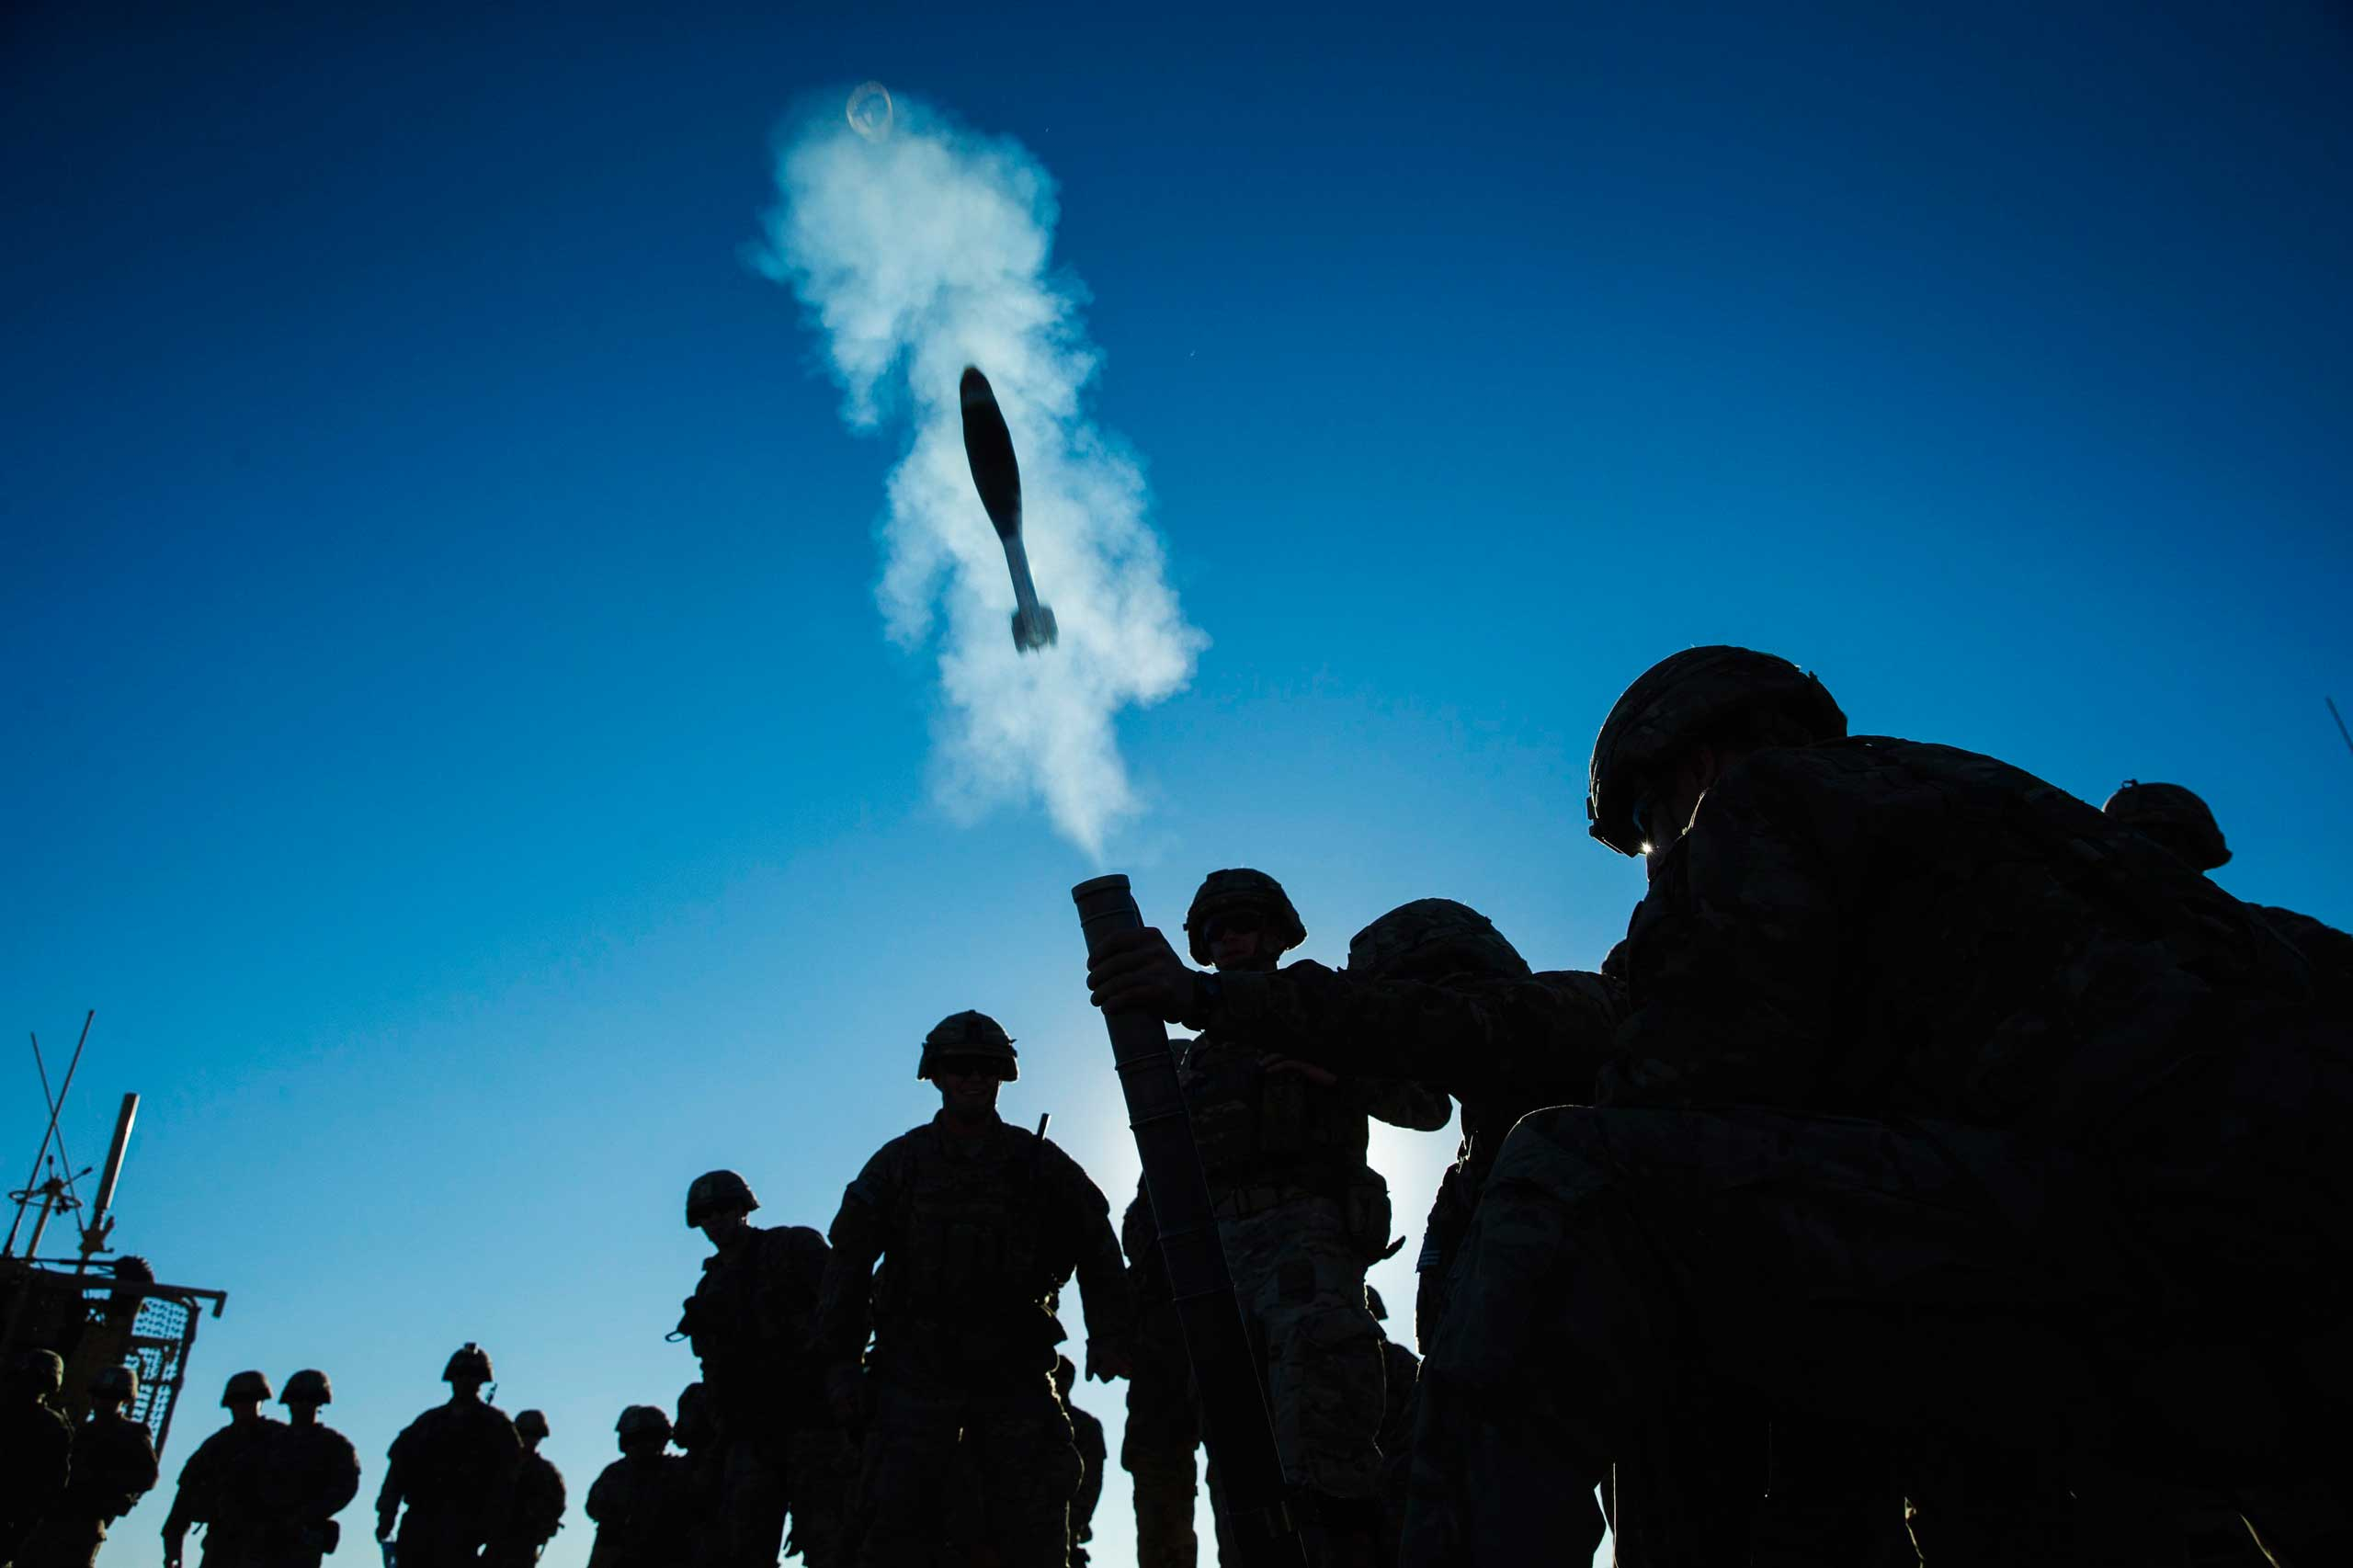 A mortar flies out of a tube during a mortar exercise for U.S. soldiers in Dragon Company of the 3rd Cavalry Regiment near forward operating base Gamberi in the Laghman province of Afghanistan on Dec. 26, 2014.